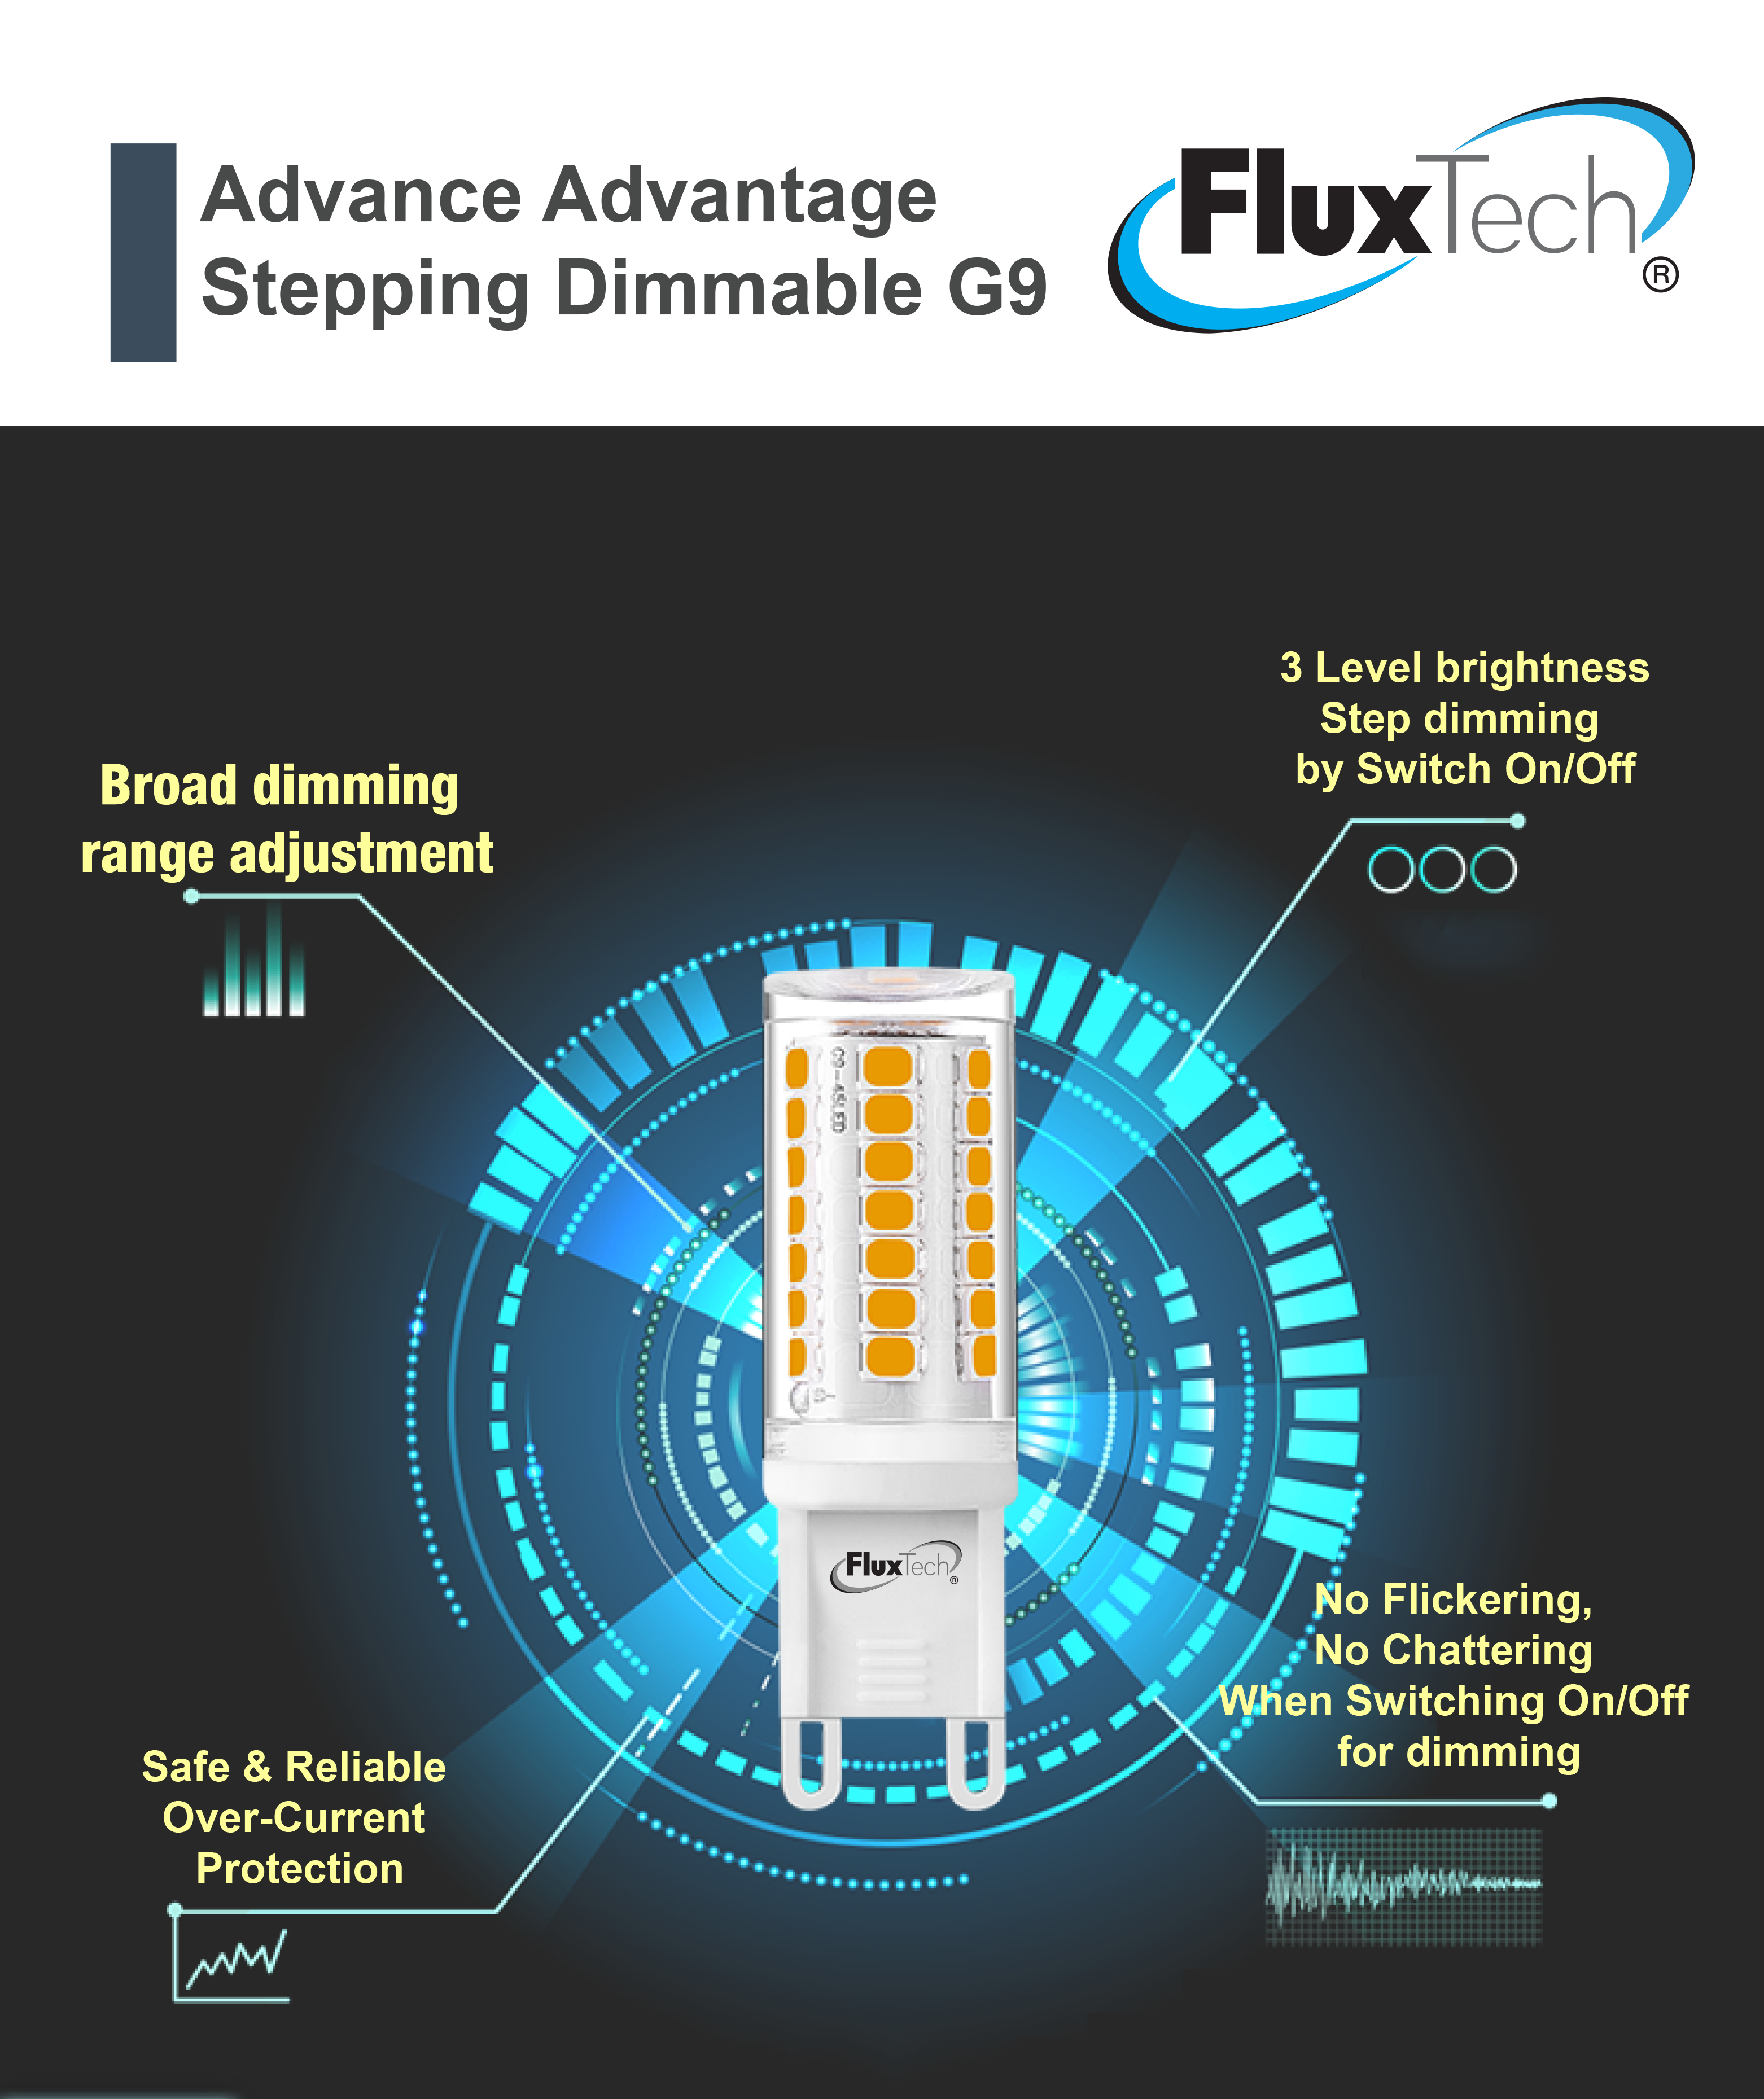 FluxTech - New Stepping Dimmable G9 LED Bulb